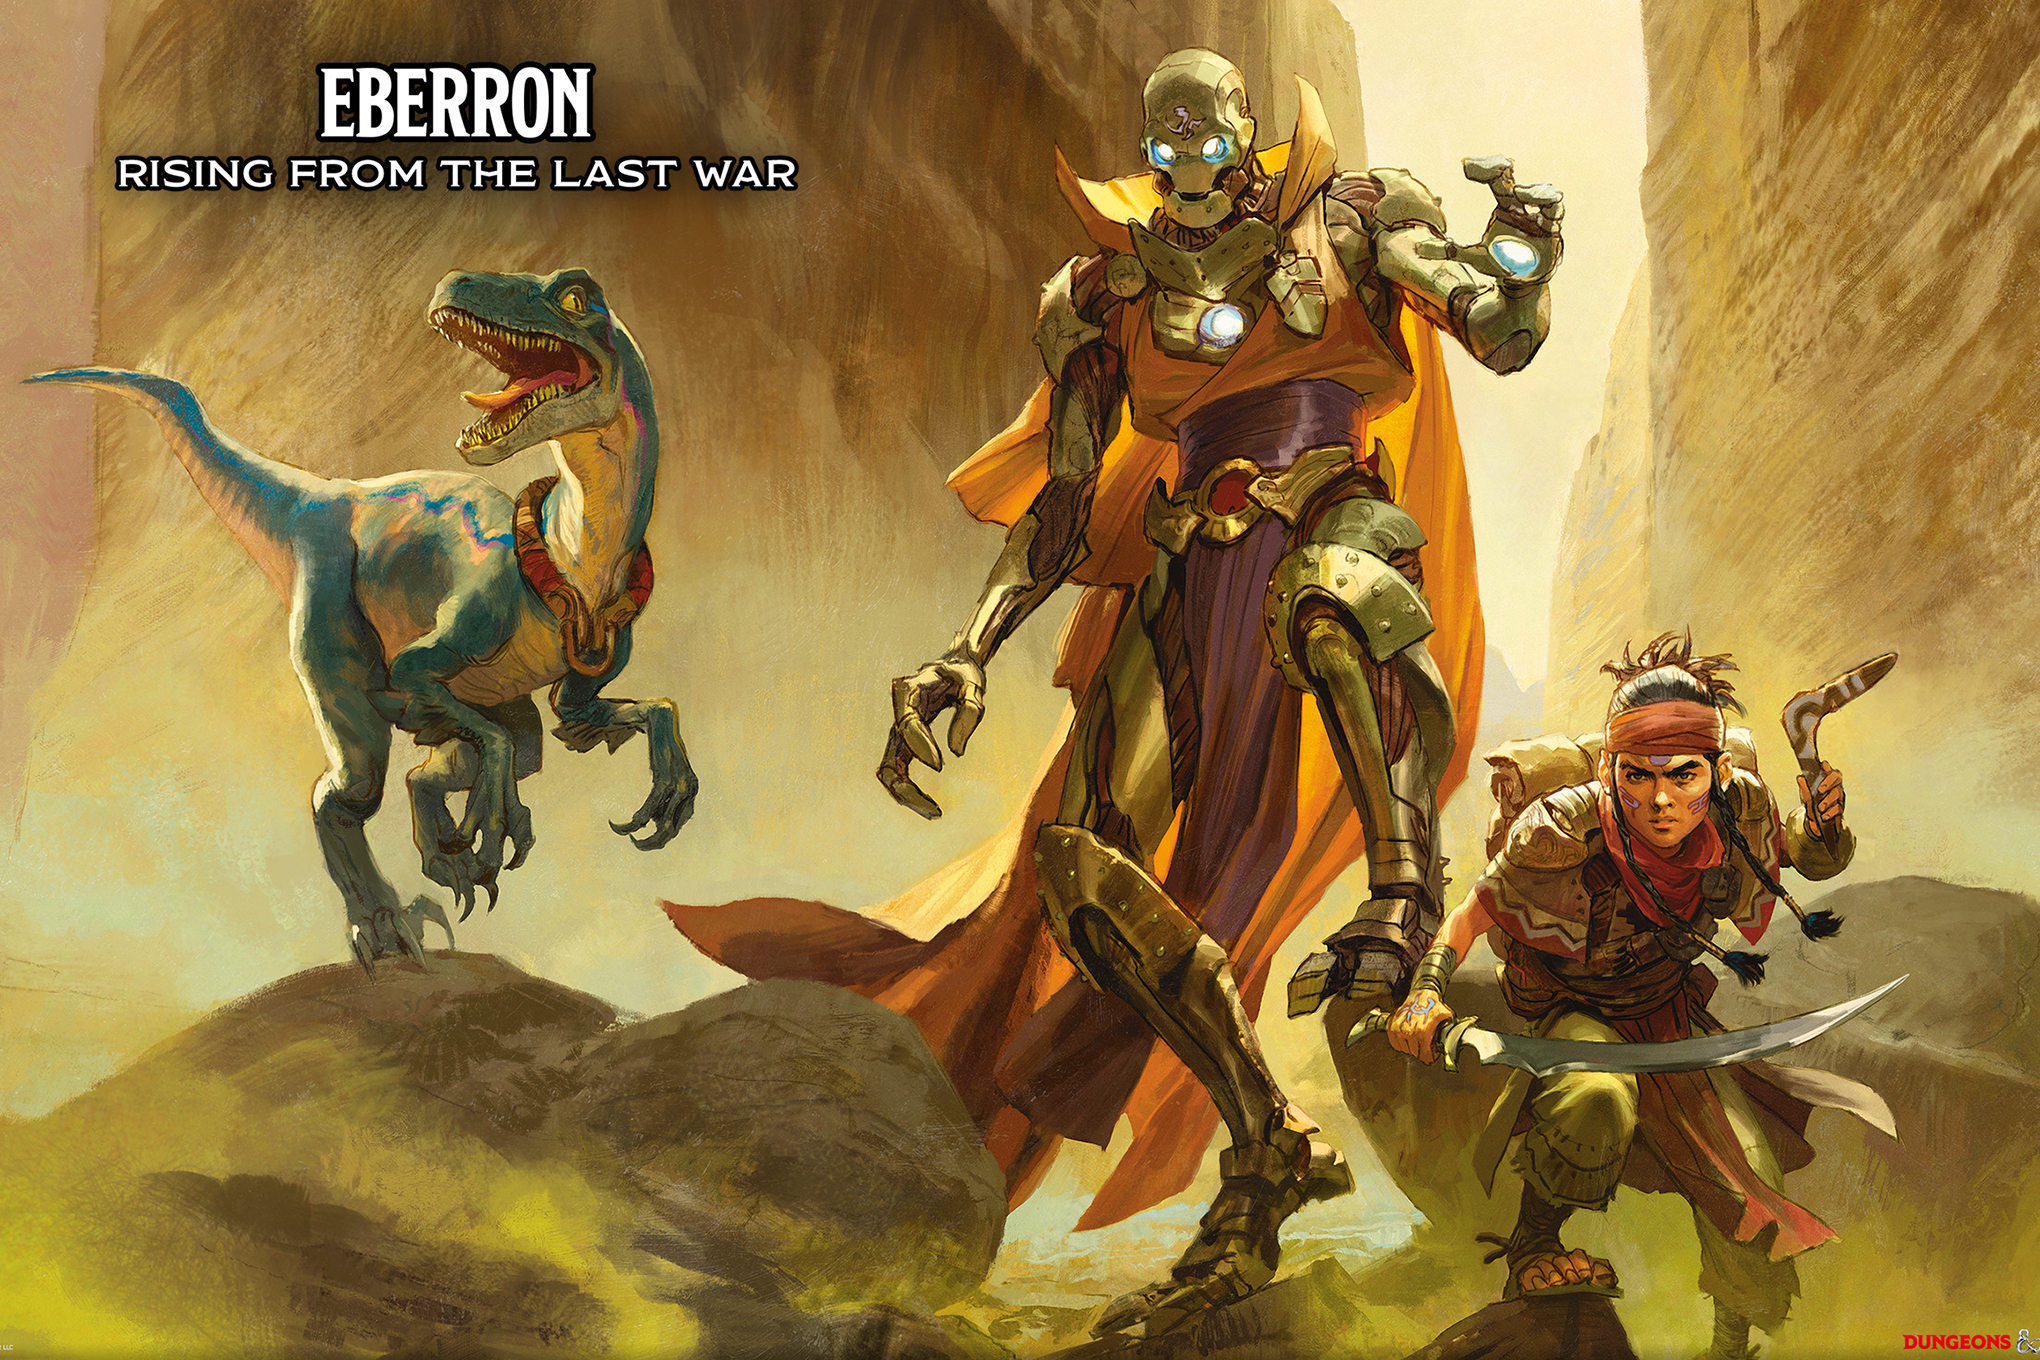 Cover art for Eberron: Rising From The Last War shows a velociraptor, flanked by a humanoid construct and a thief with a scimitar and a boomerang. The landscape is desolate and brown.